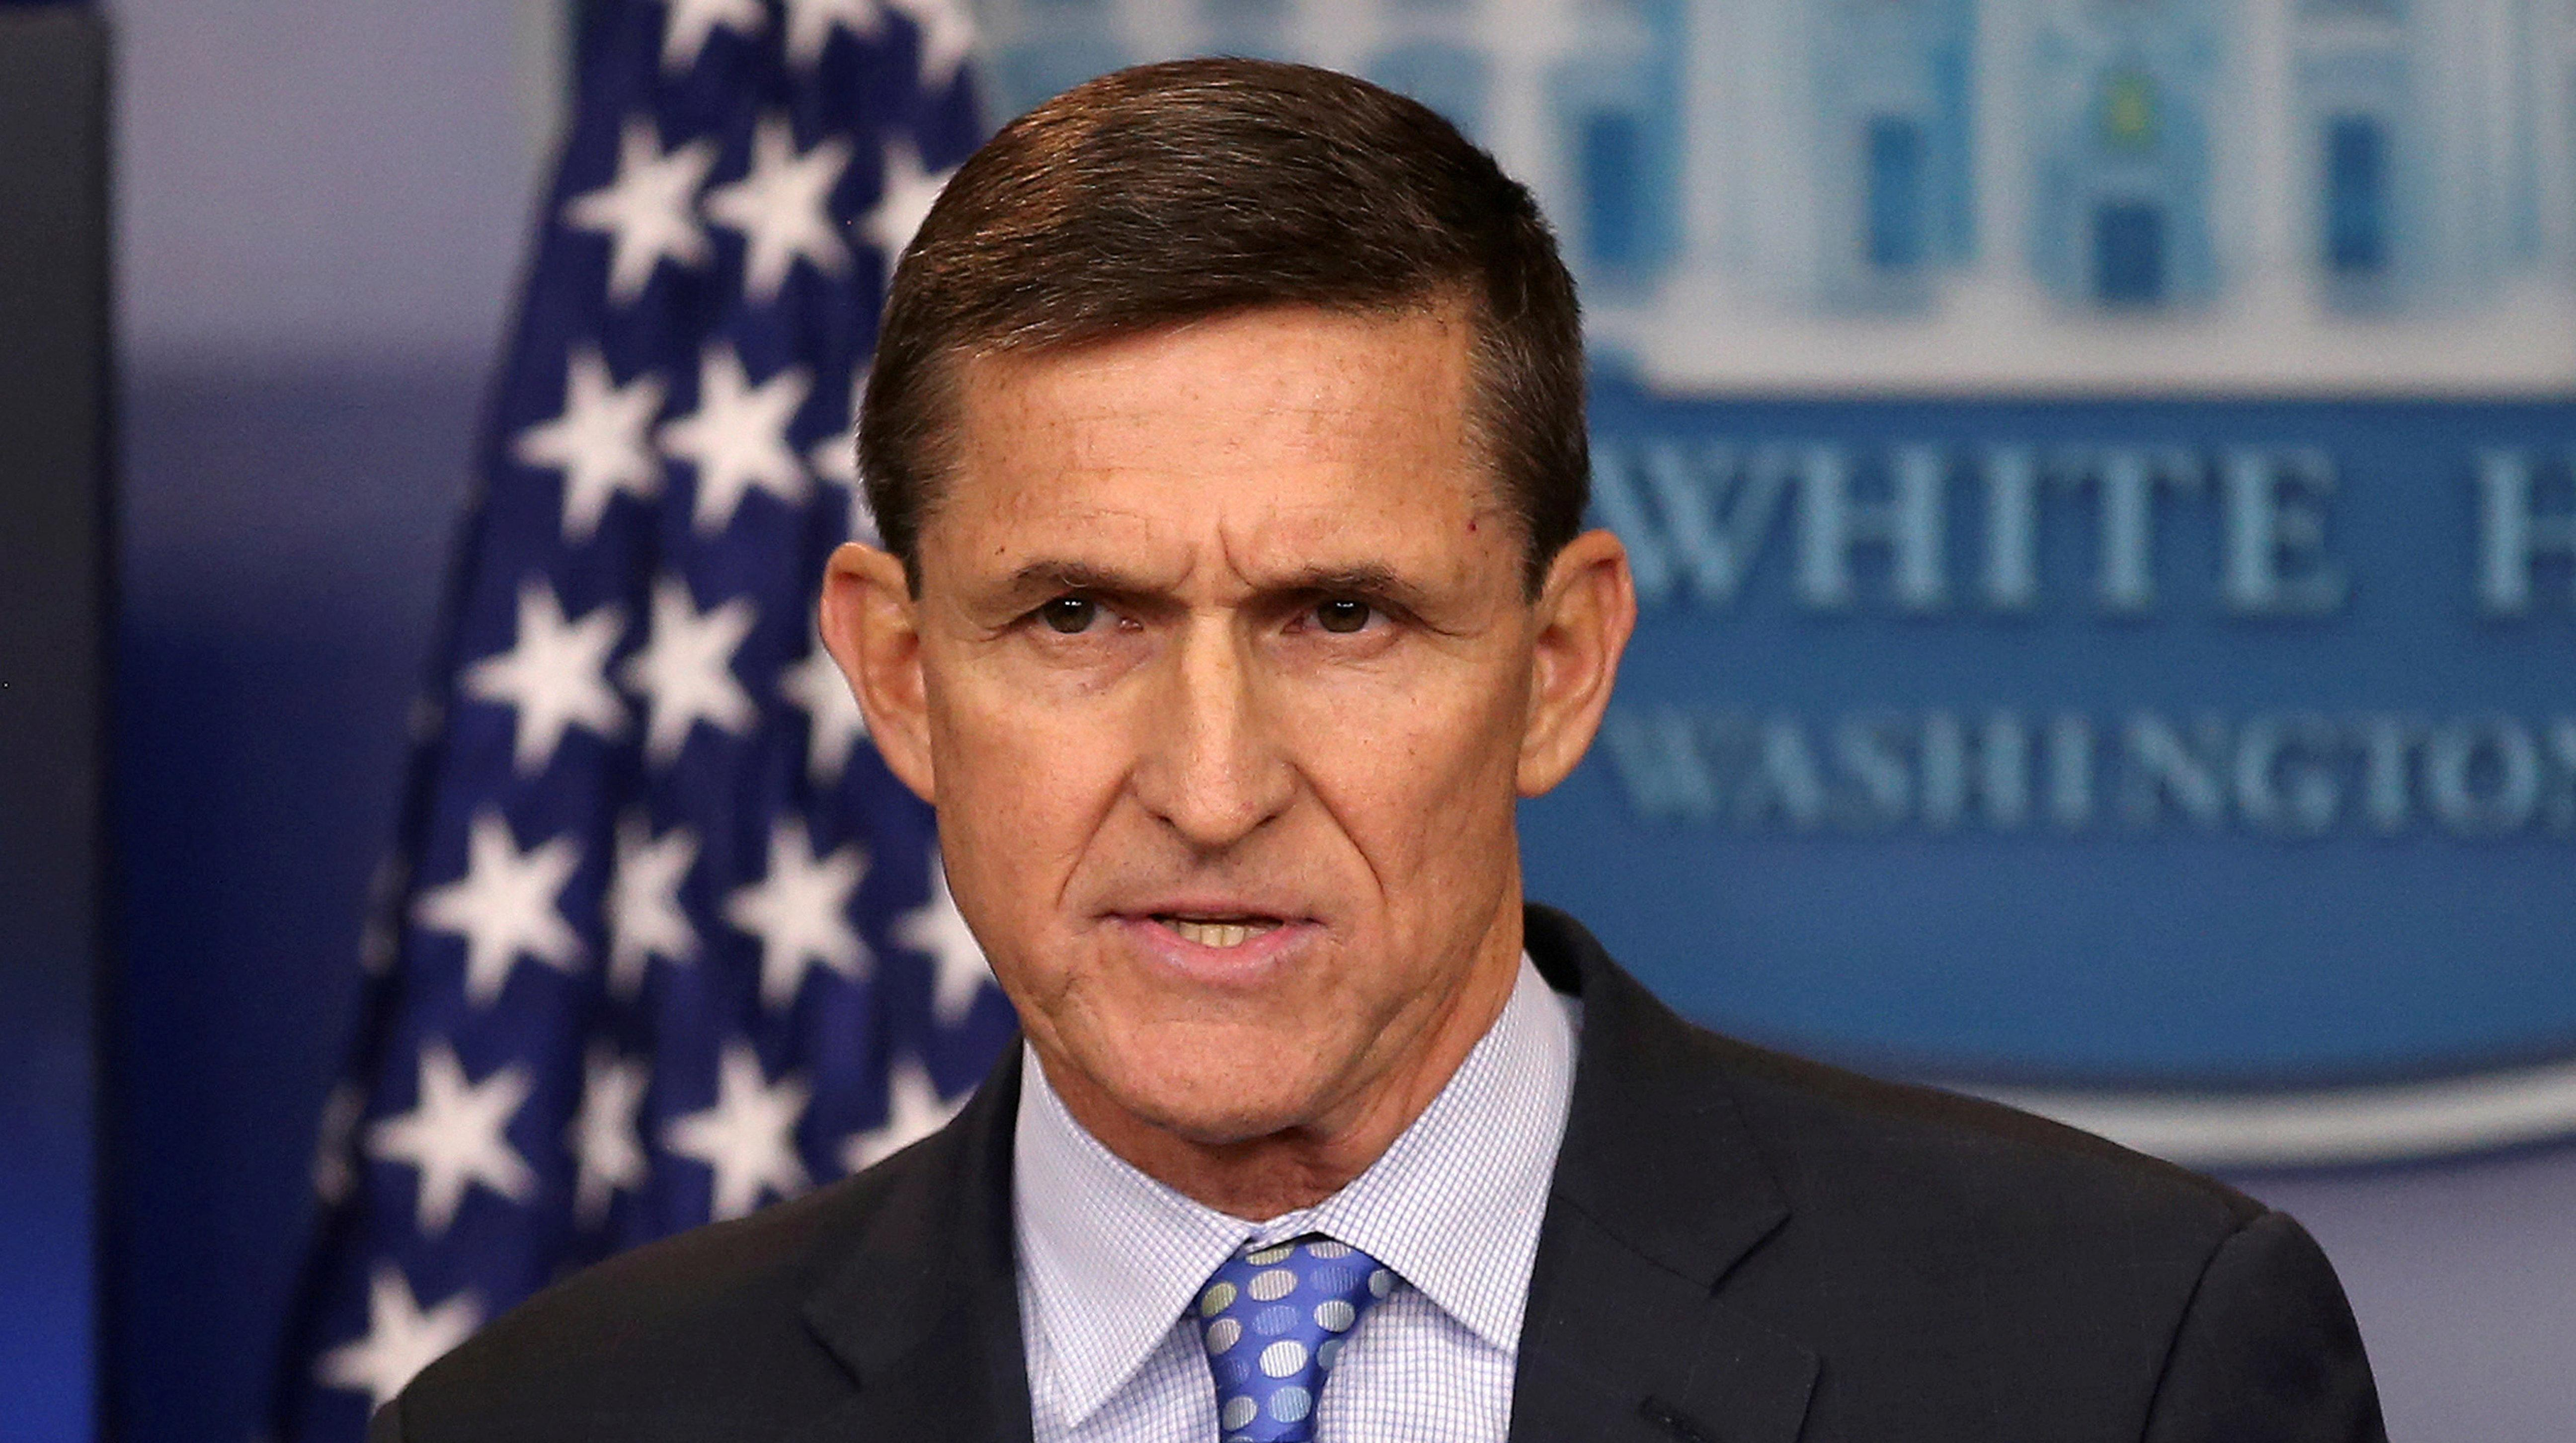 In White House, Flynn Pitched Nuclear Plan From Company He'd Advised: Reports